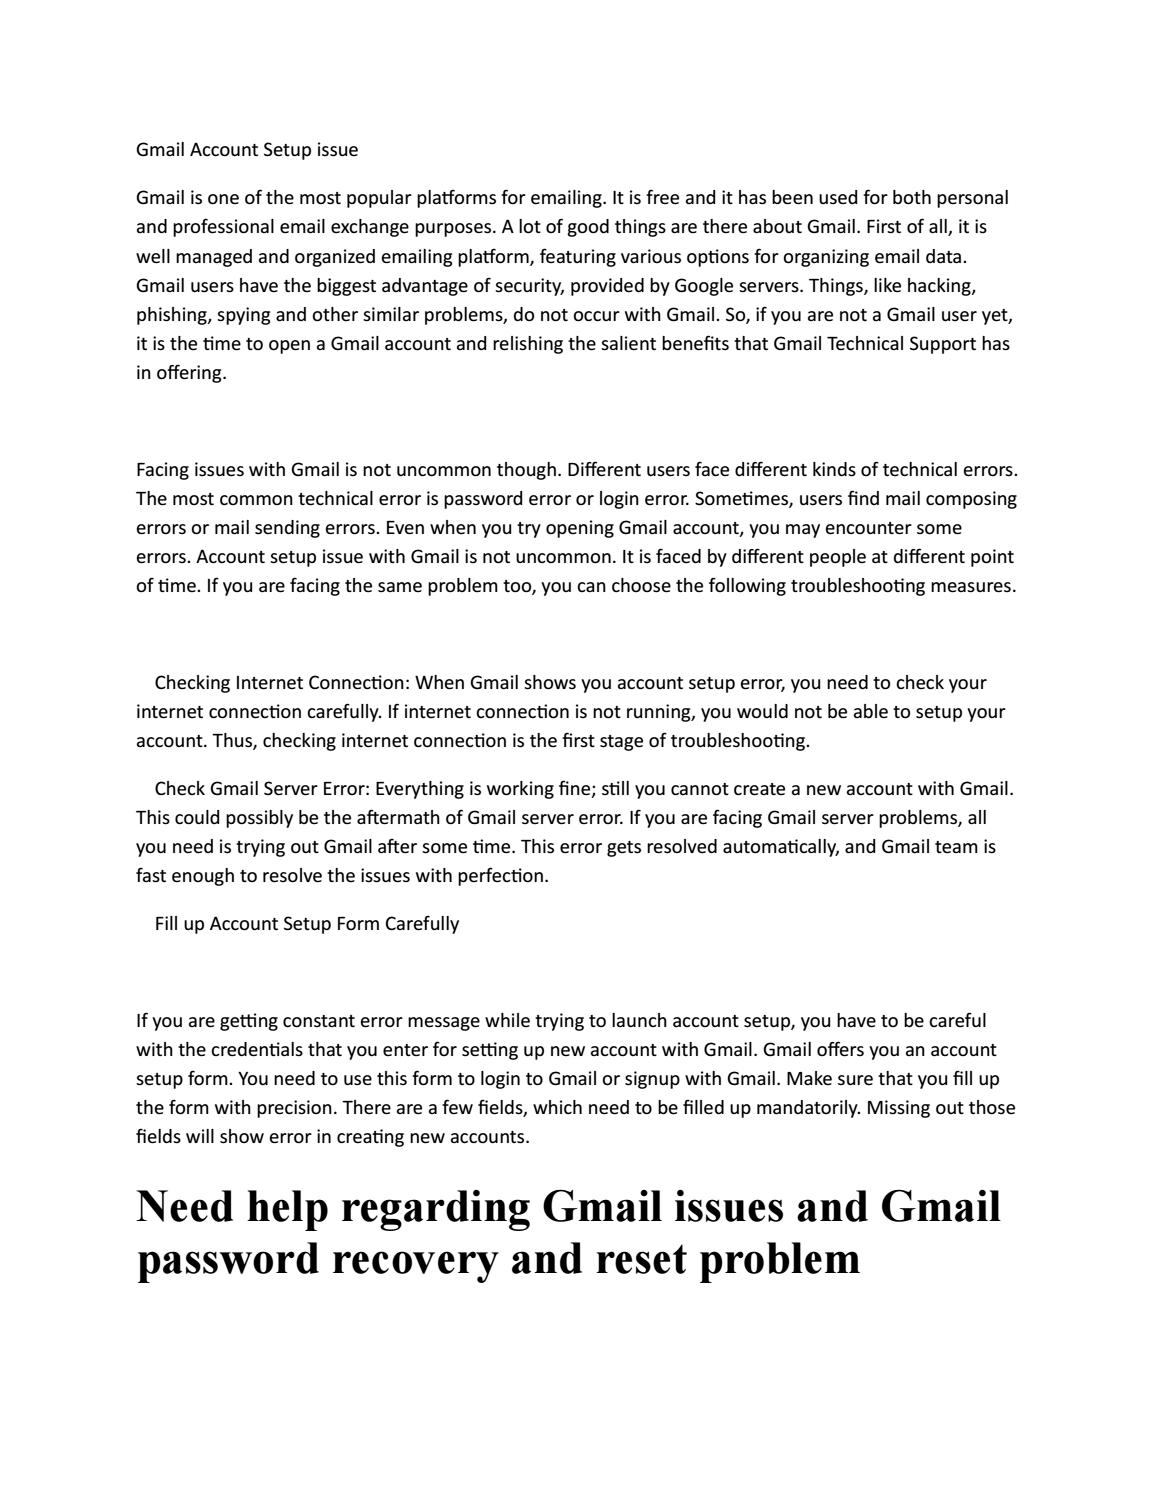 Gmail account setup issue by Gmail Technical SUpport - issuu